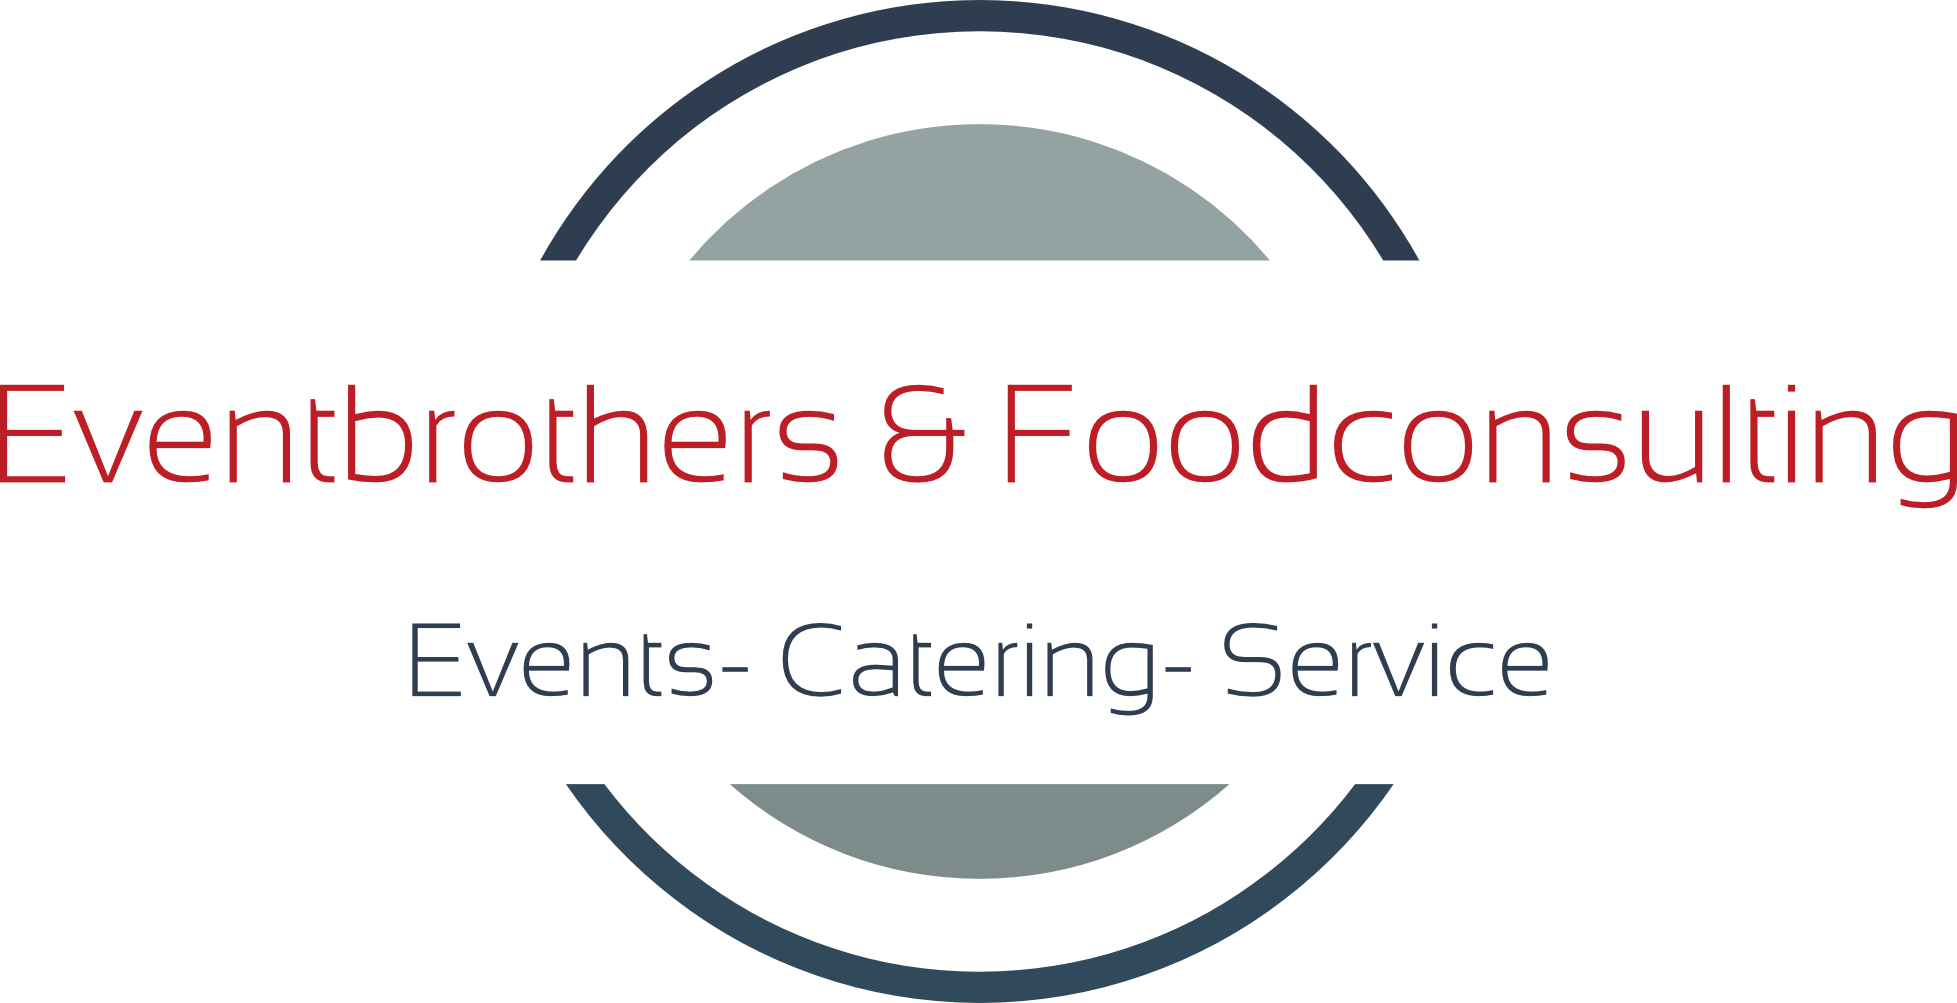 Eventbrothers & Foodconsulting